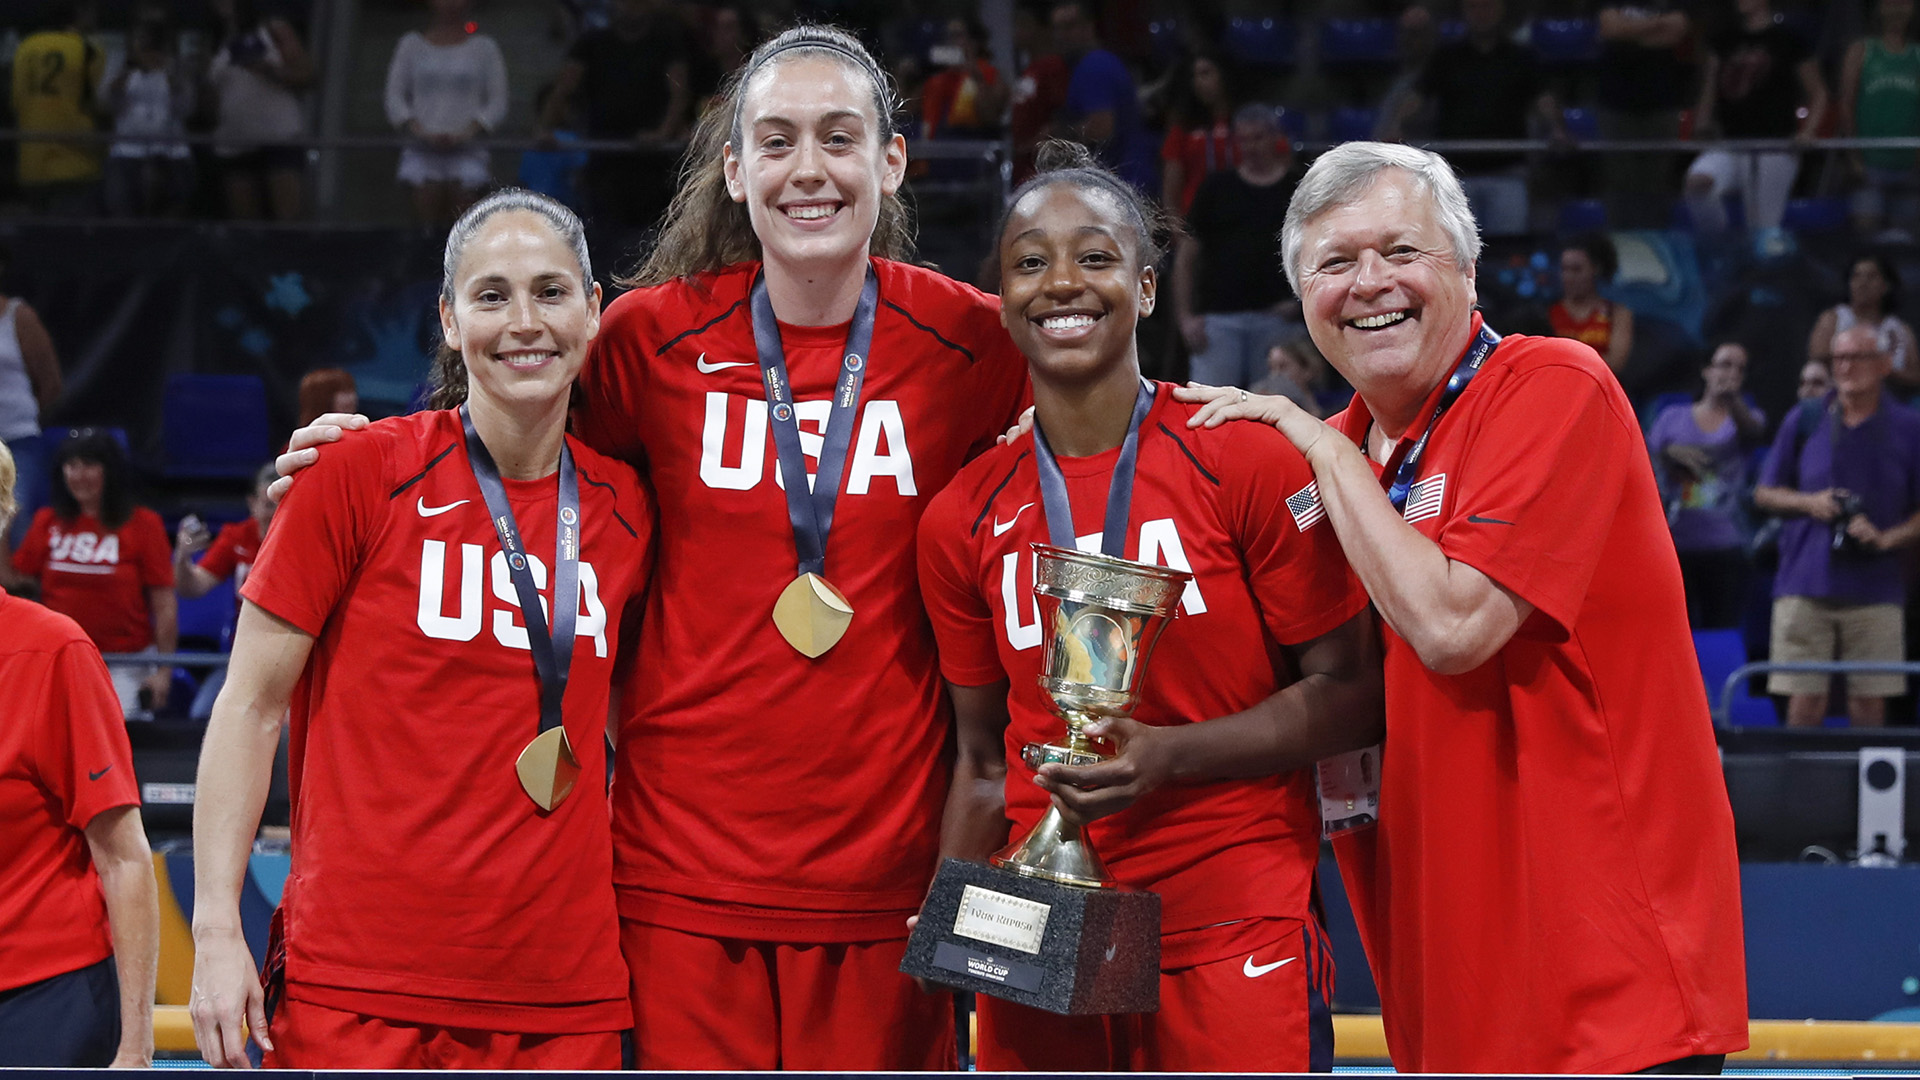 Sue Bird, Breanna Stewart, Jewell Loyd and Dan Hughes celebrate winning the 2018 FIBA World Cup gold medal.